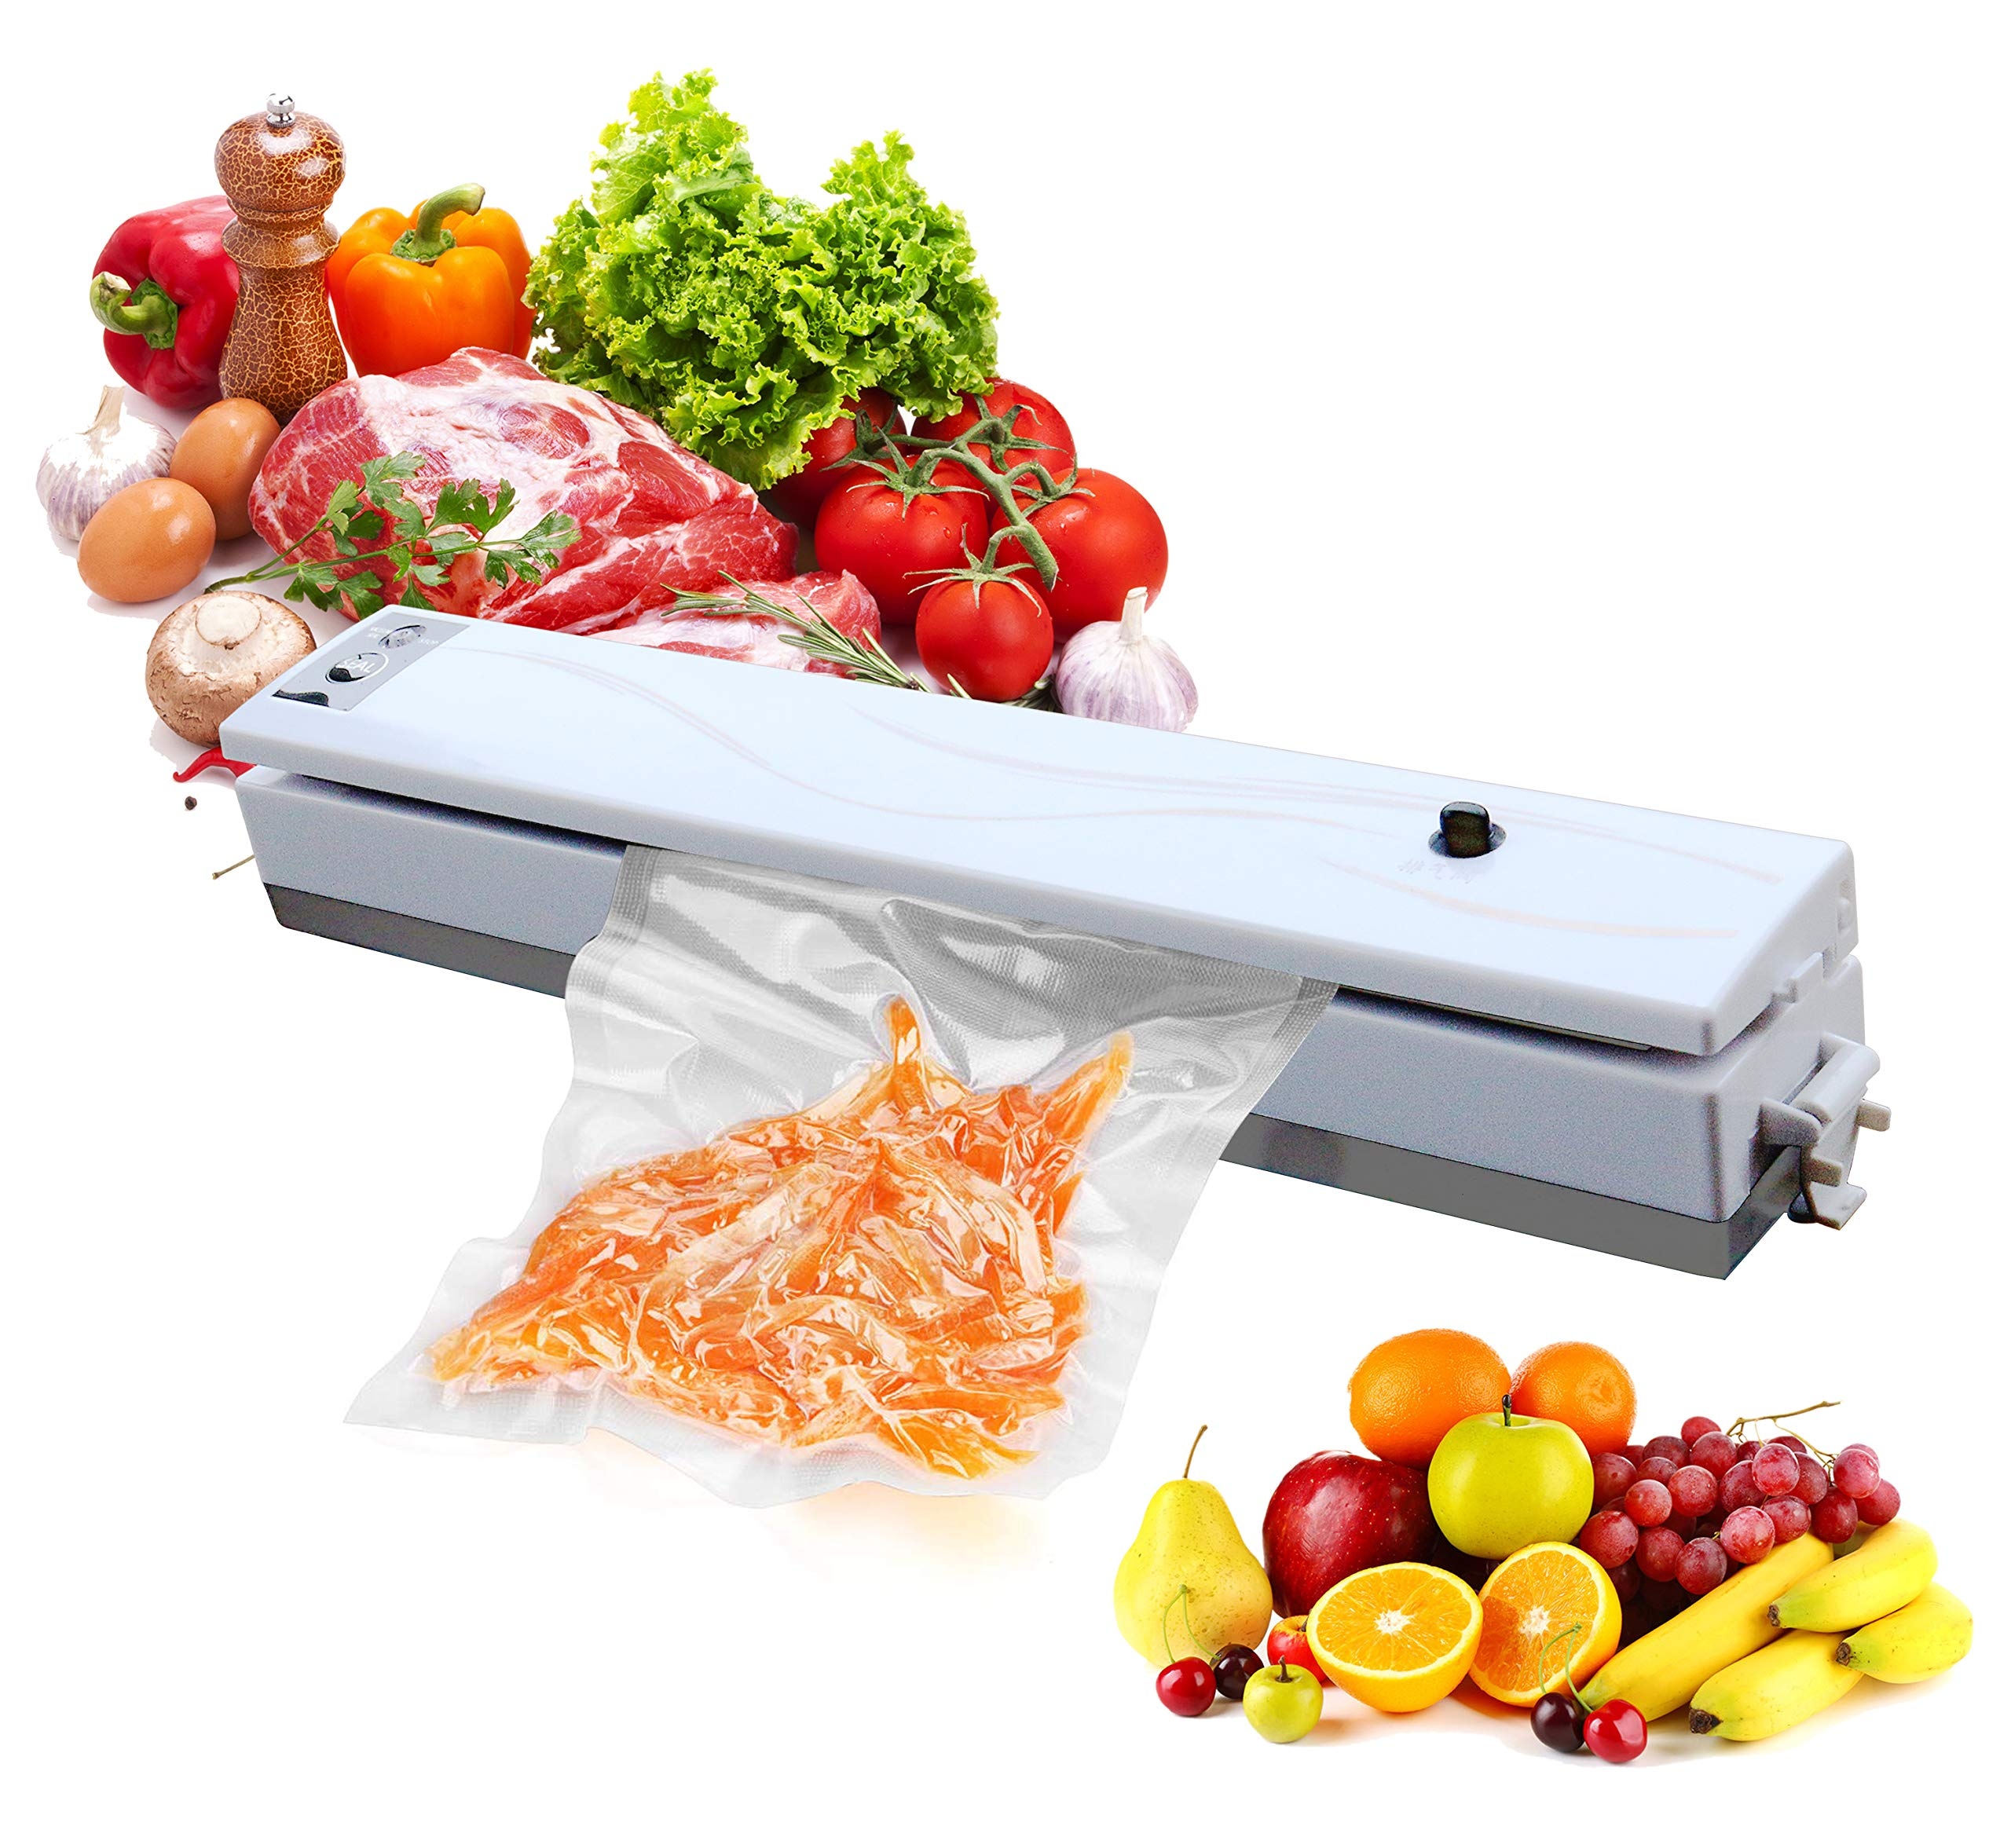 Vacuum Sealer, FIGROL Food Sealer Machines One-button Vacuum Sealing System for Household Commercial Use of Food Preservation with Gift Vacuum Bag by FIGROL